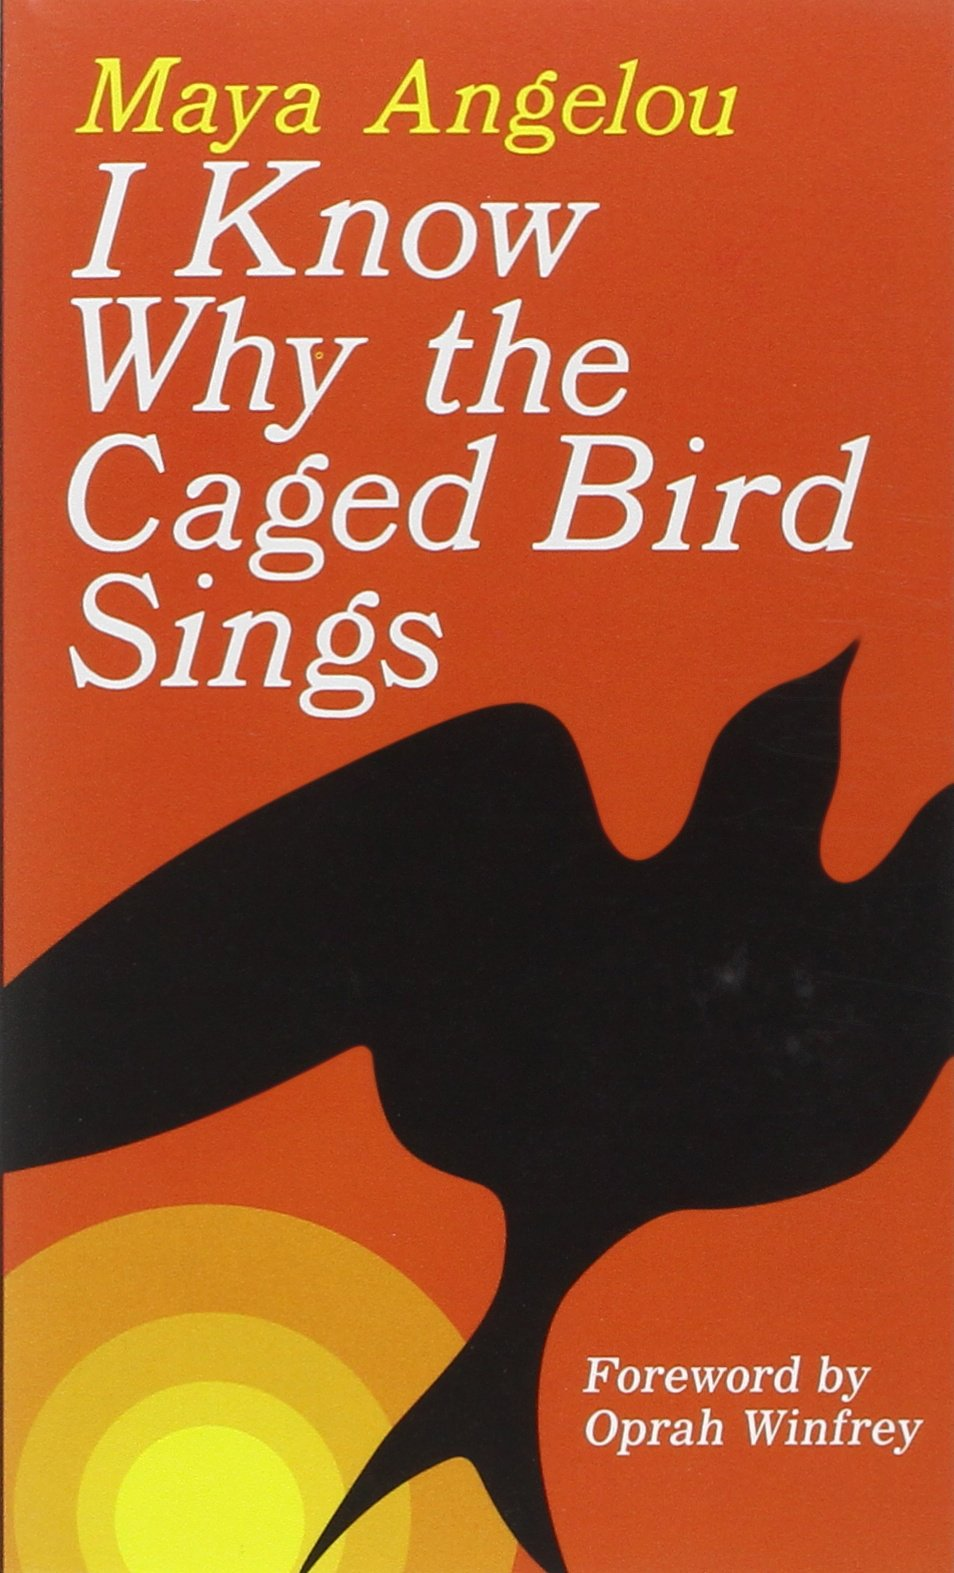 Biographies & Memoirs. Shakespeare: A Life I Know Why the Caged Bird Sings  ...